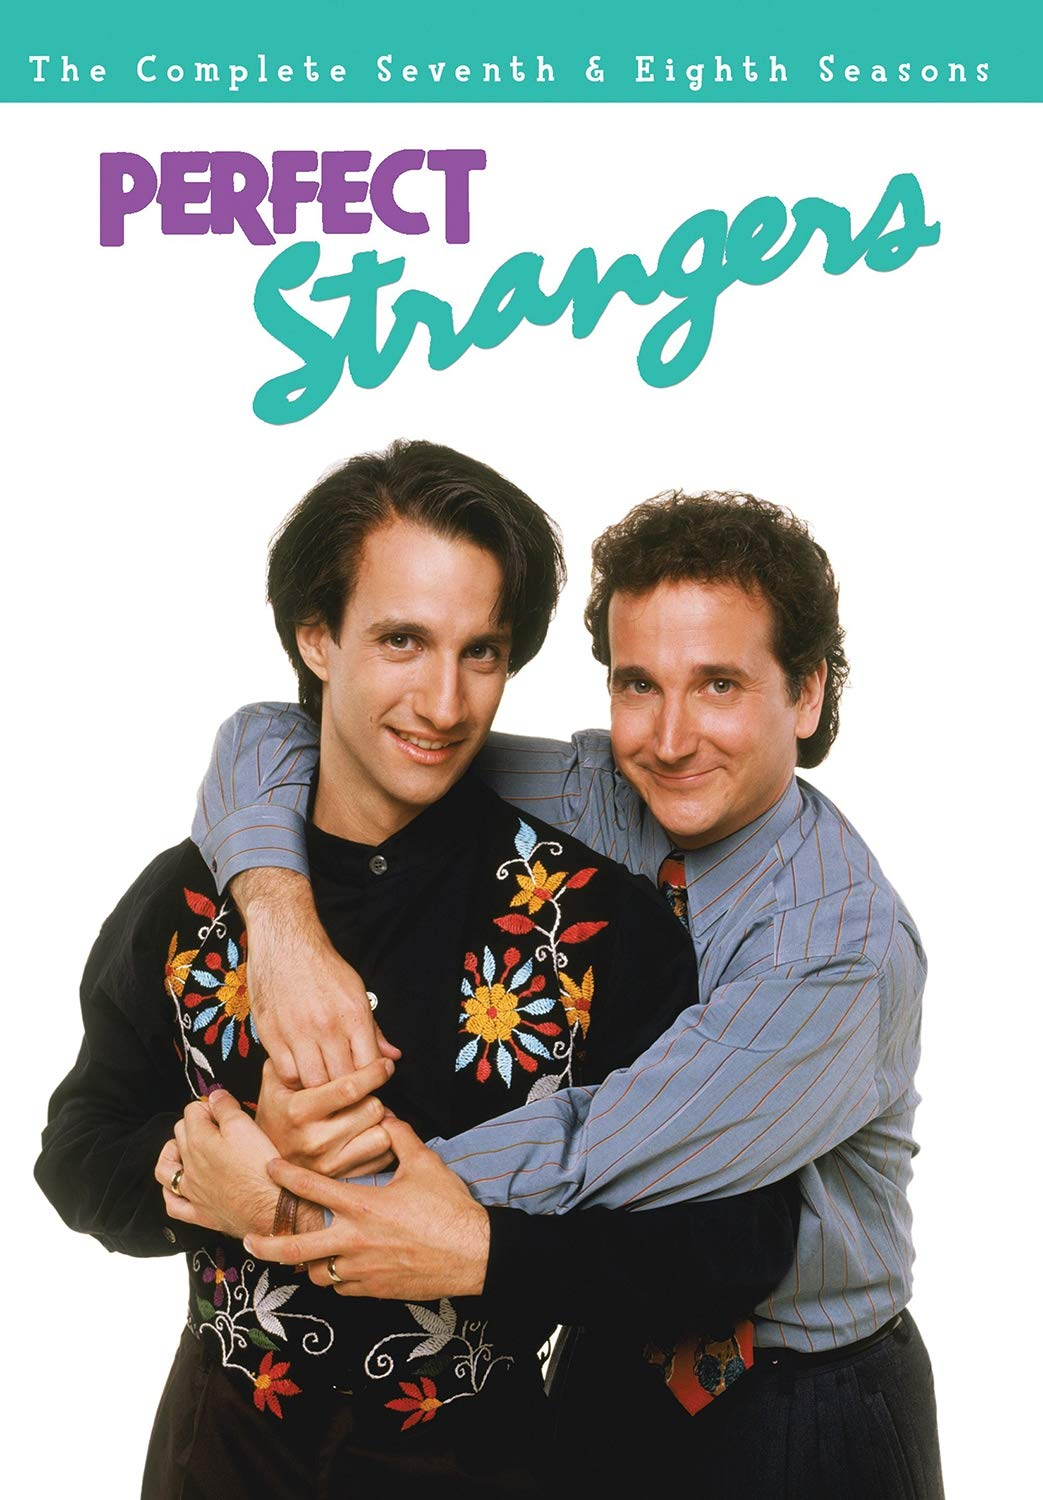 Amazon Com Perfect Strangers The Complete Seventh And Eighth Seasons Bronson Pinchot Mark Linn Baker Rebeca Arthur Melanie Wilson Movies Tv